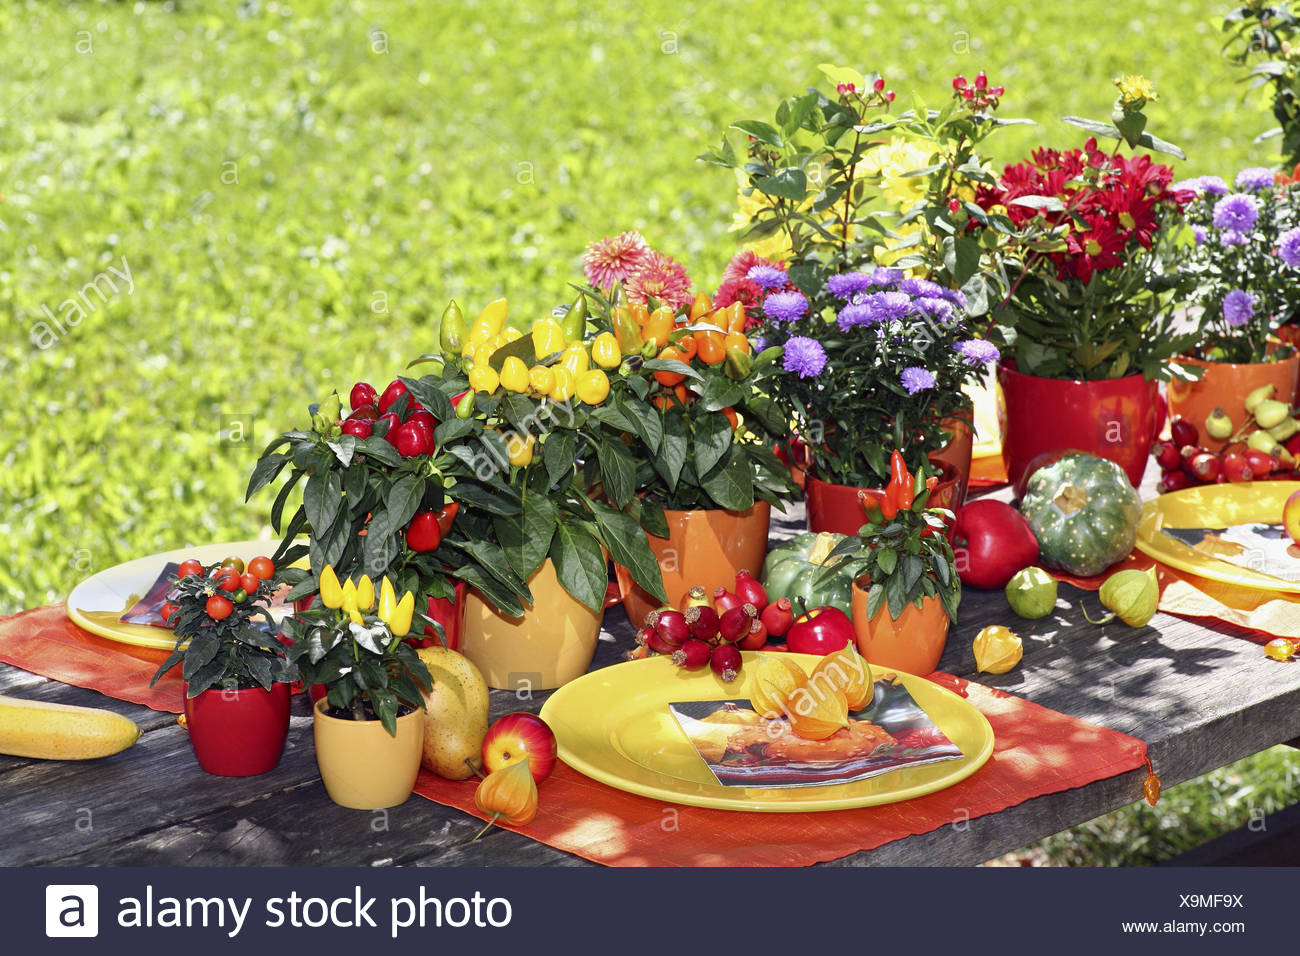 Garden table, decorated, autumnally, covered, brightly, fruits, flowers, vegetables, garden, table, late summer, season, autumn, pumpkin, rose hips, Physalis, asters, flowerpots, plates, paprika plant, chrysanthemum, Johanniskraut, yellow, orange, mauve, - Stock Image